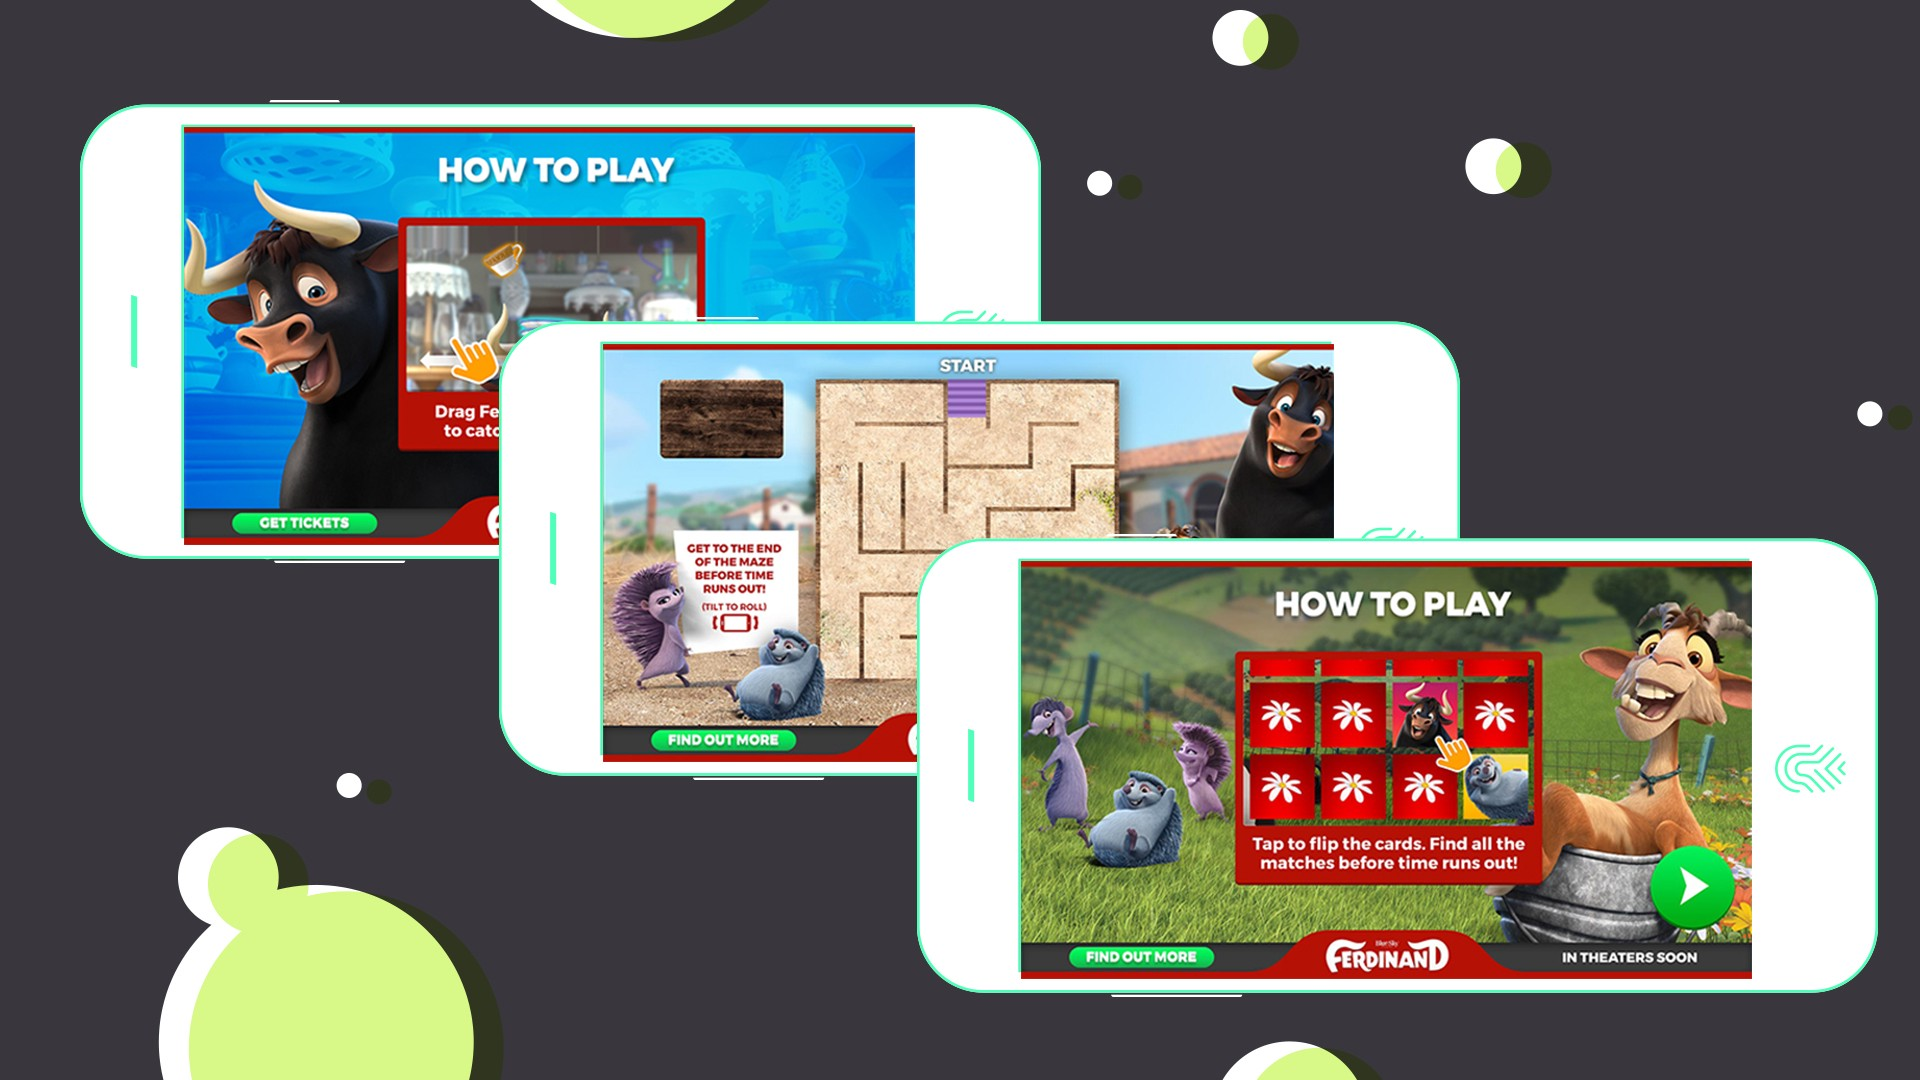 Tapjoy Launches Interplay Studio, Designs Custom-Branded